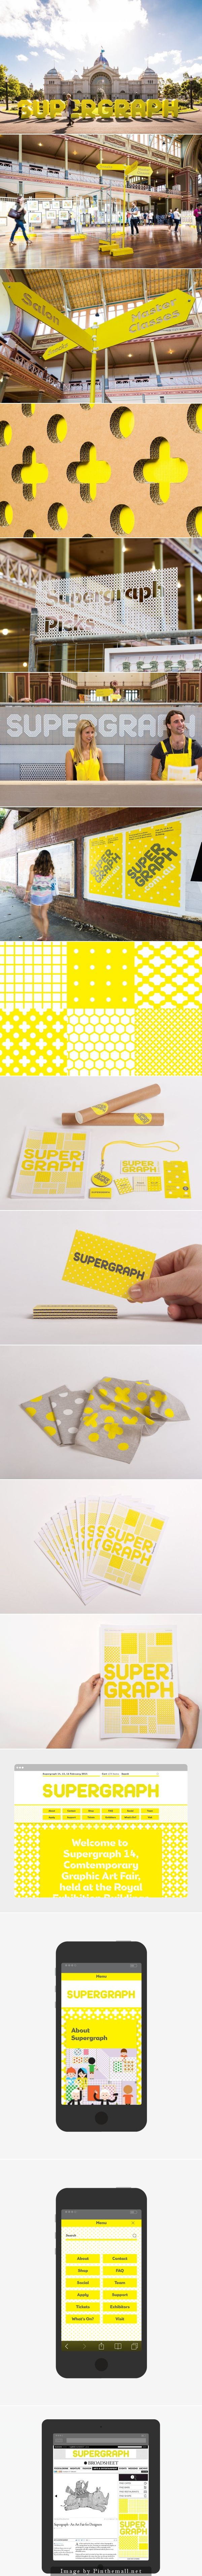 Supergraph ON THIS WEEKEND feb 14-15th. Full of illustrators sharing their wares. Pictured: supergraph identity design, environmental graphics, super graphics, signage